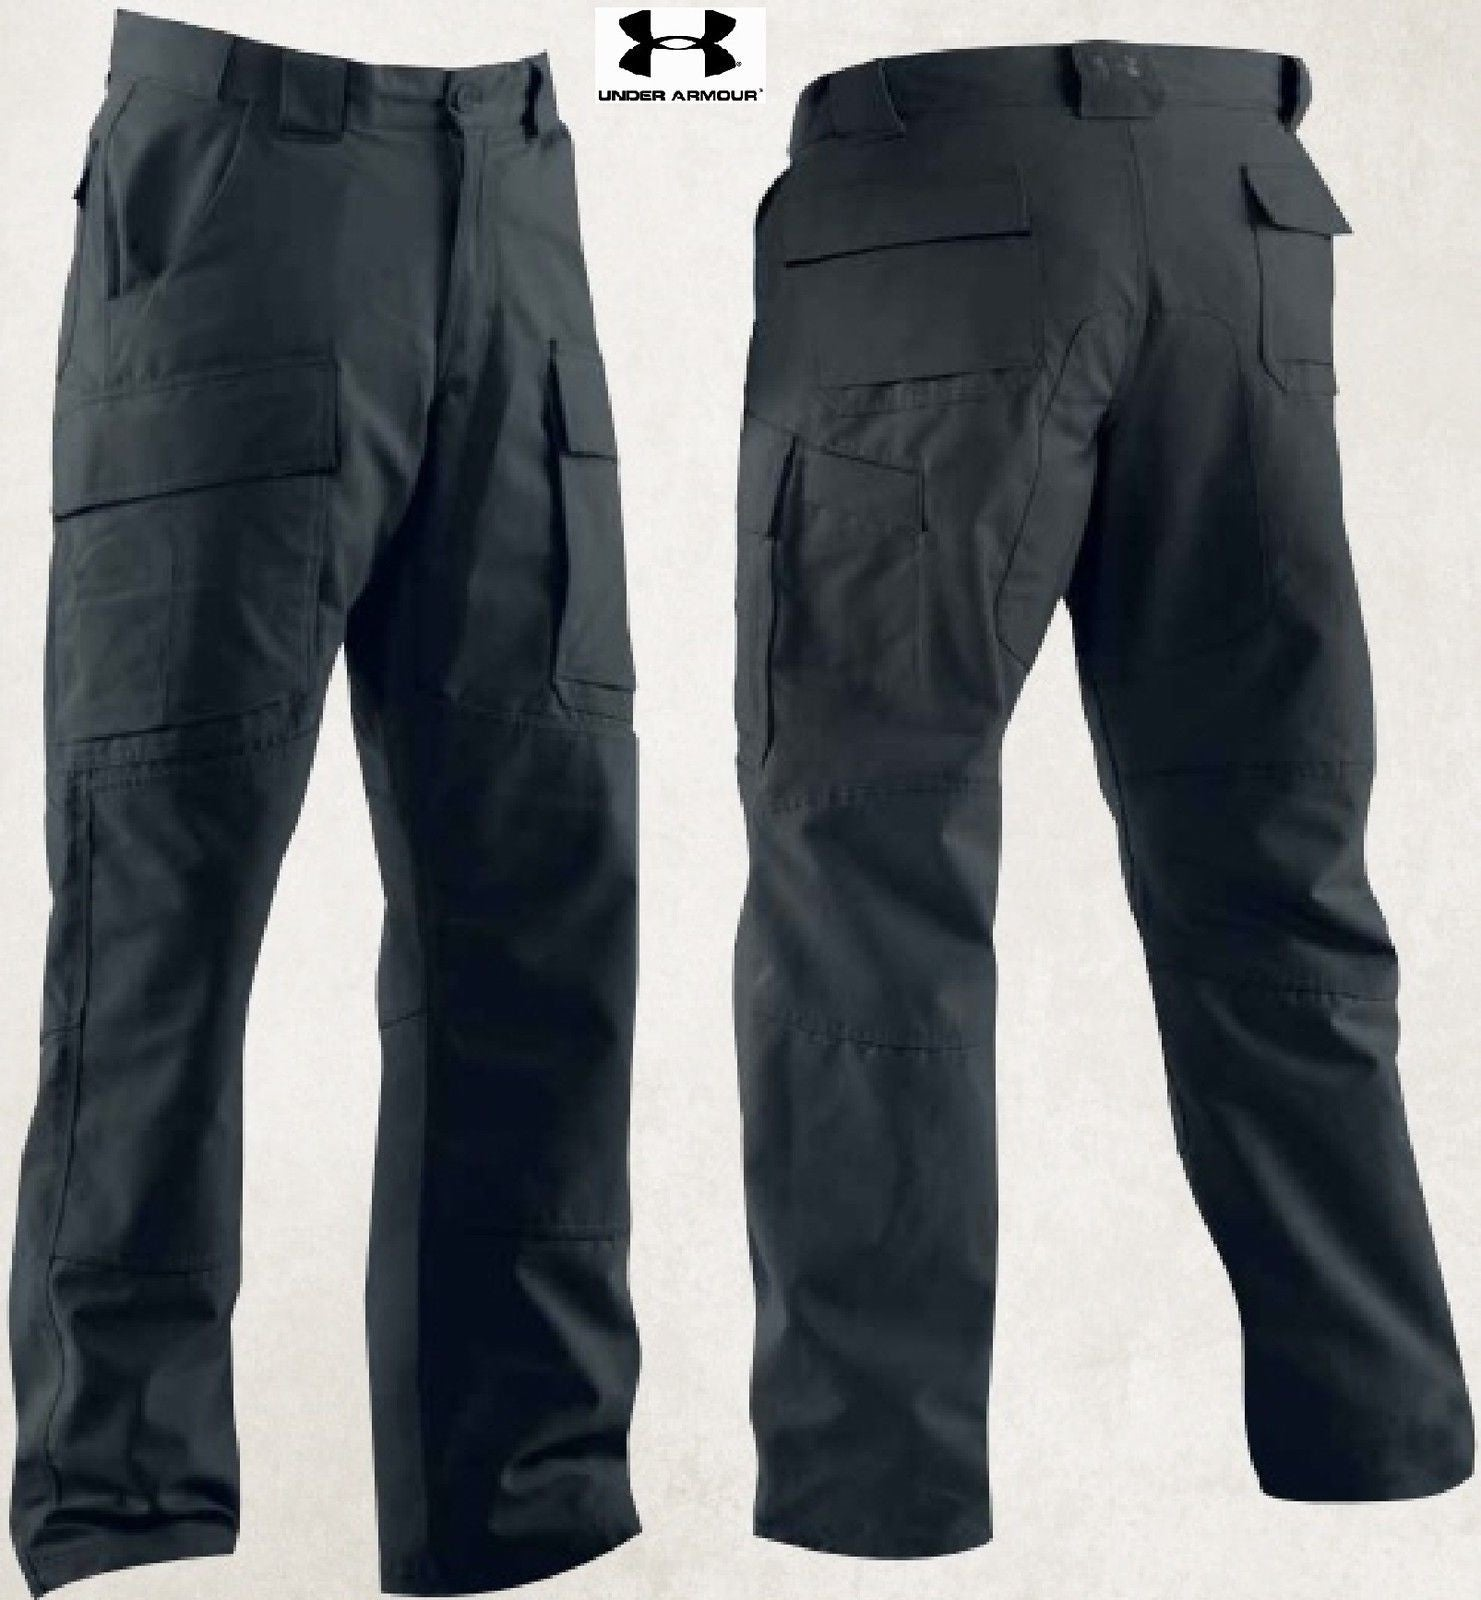 41aee91056 Under Armour Storm Tactical Duty Cargo Pants - UA Mens Loose Fit ...